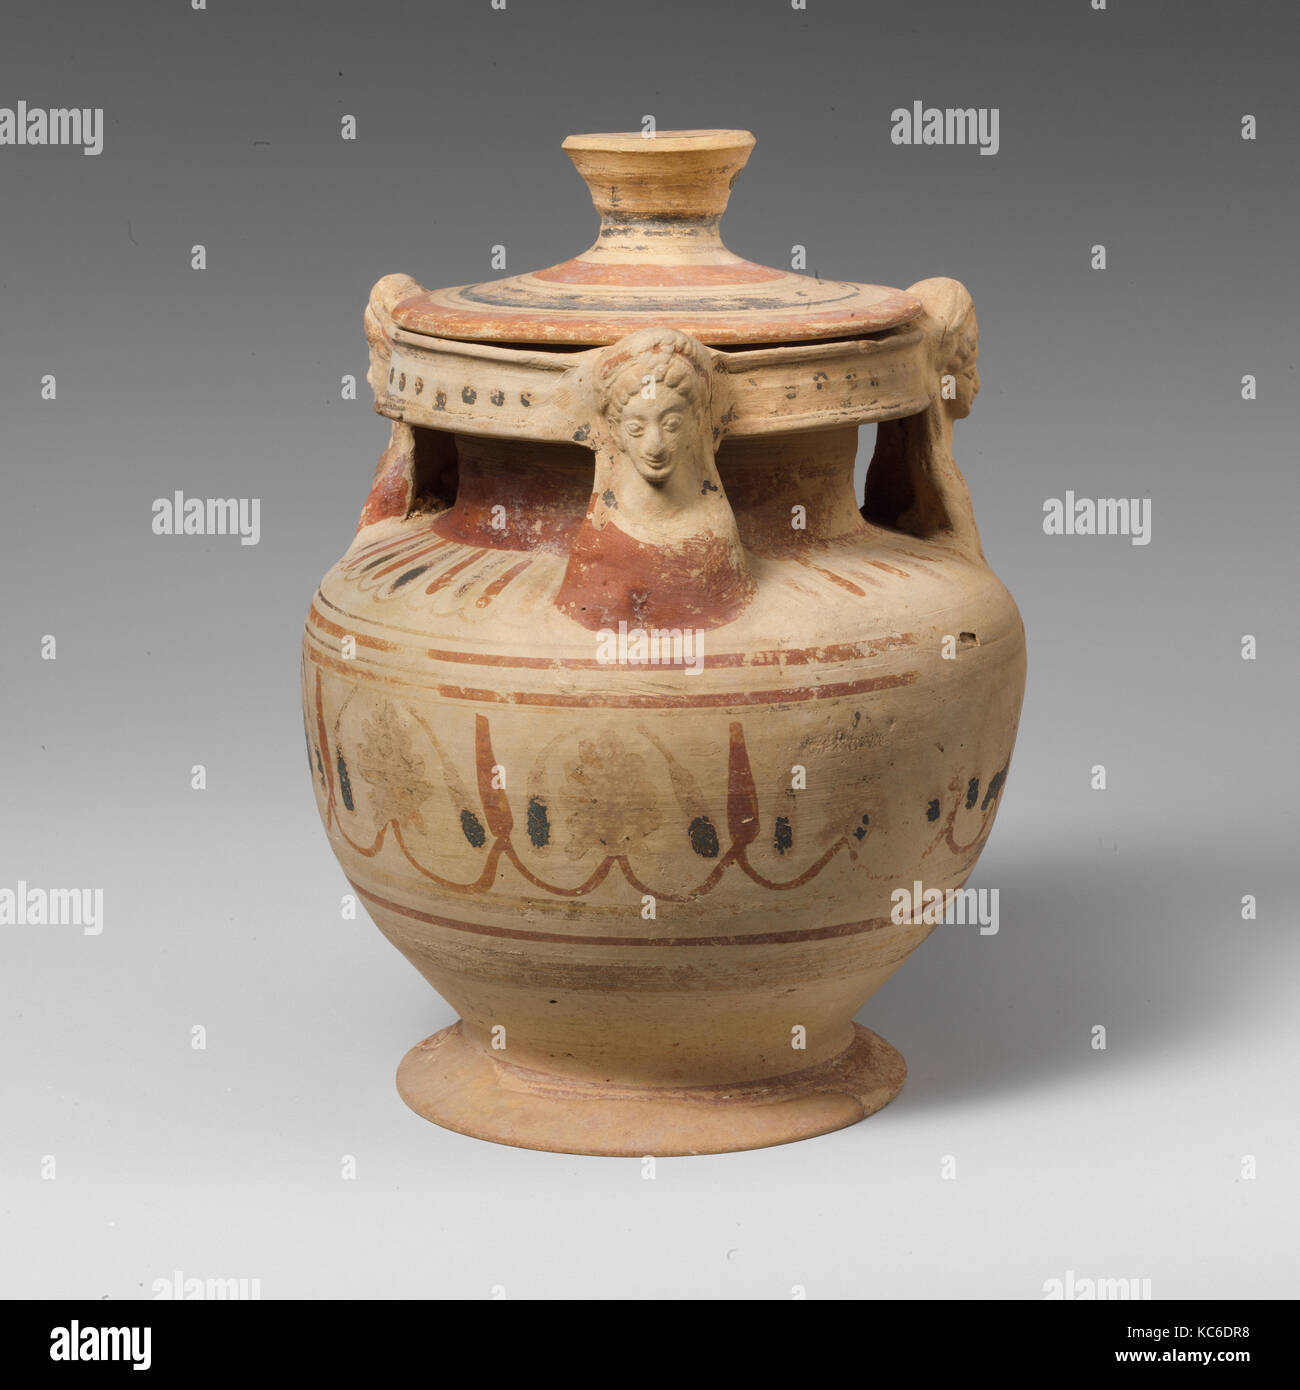 Watch How to Cook in an Unglazed Clay Pot video